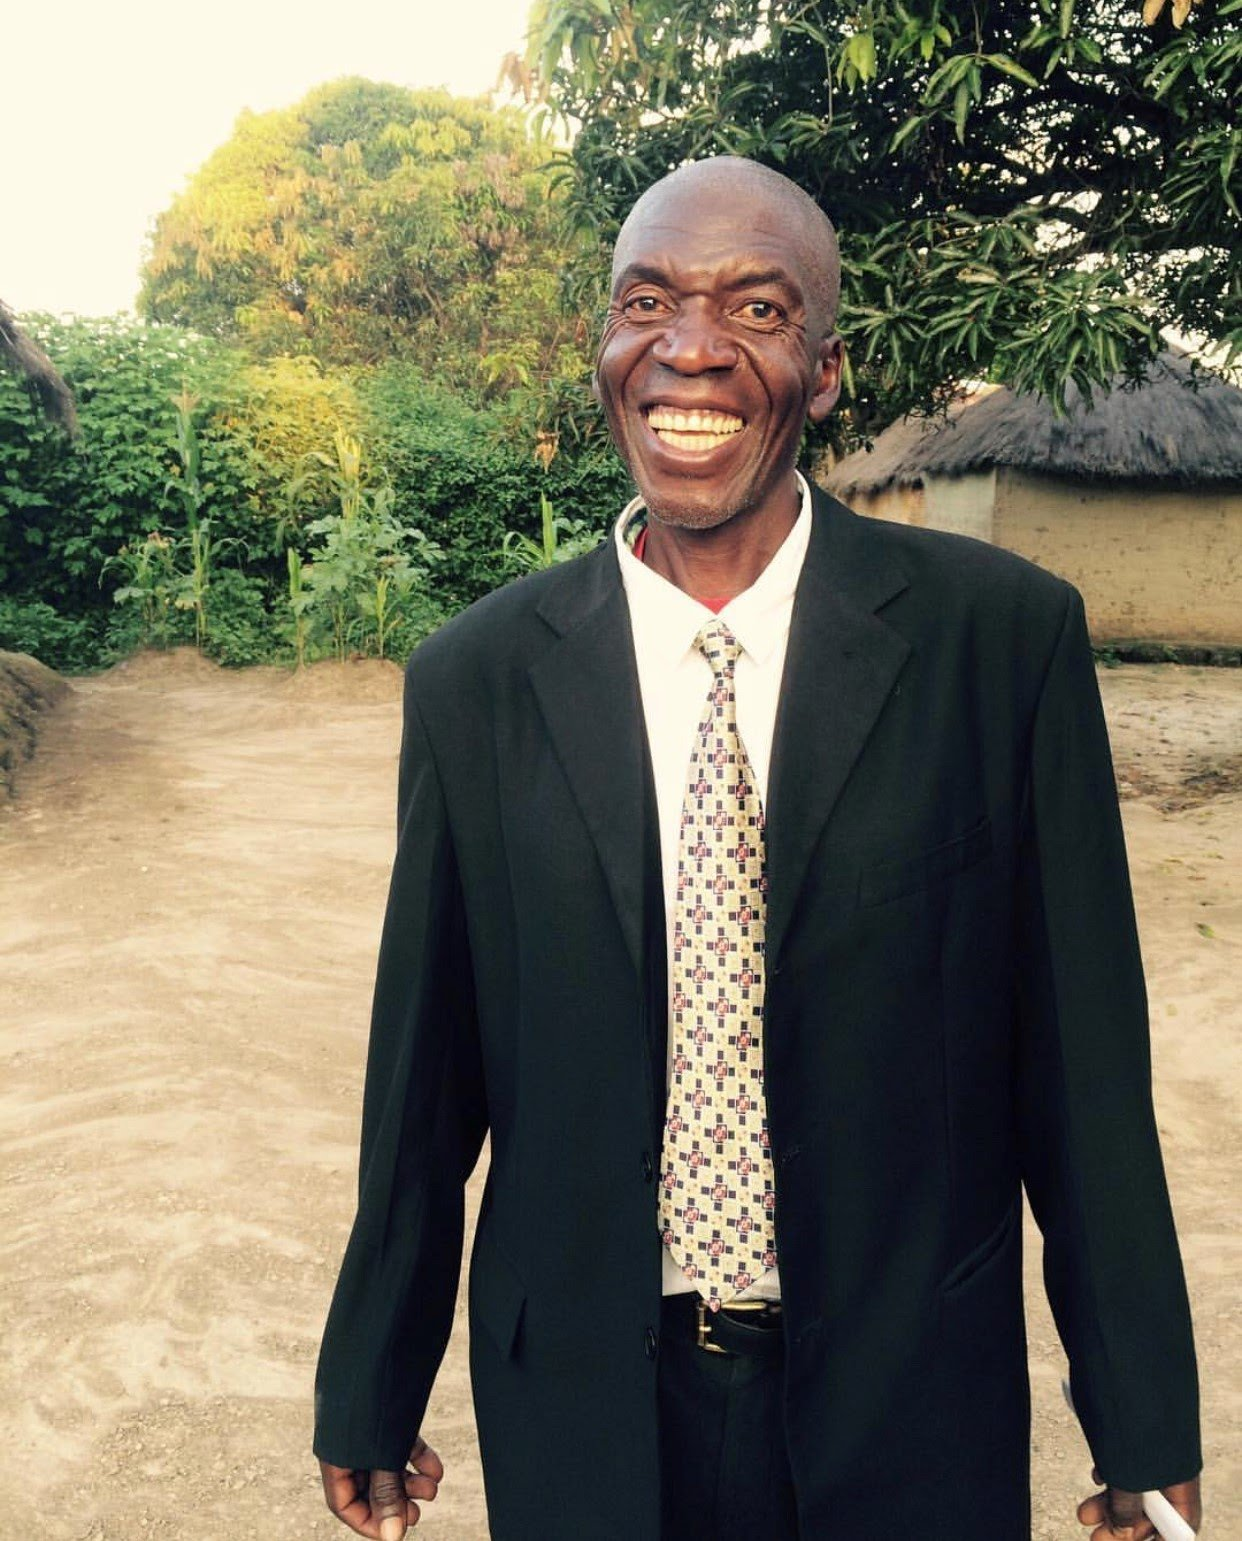 Outreach Zambia community parter Benjamin smiles in triumph